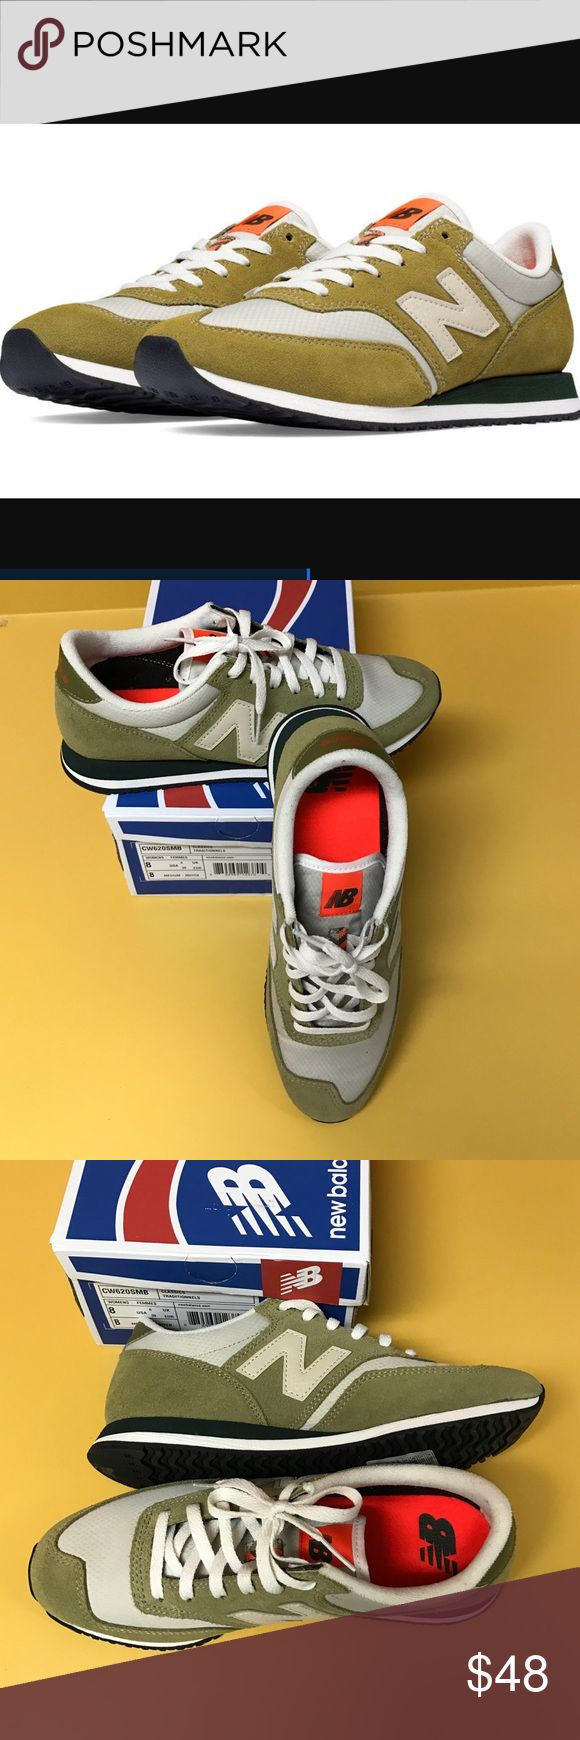 New Balance olive classic sneakers new in box Brand new in box New Balance olive colored classic sneakers. Women's size 8 medium. New Balance Shoes Sneakers